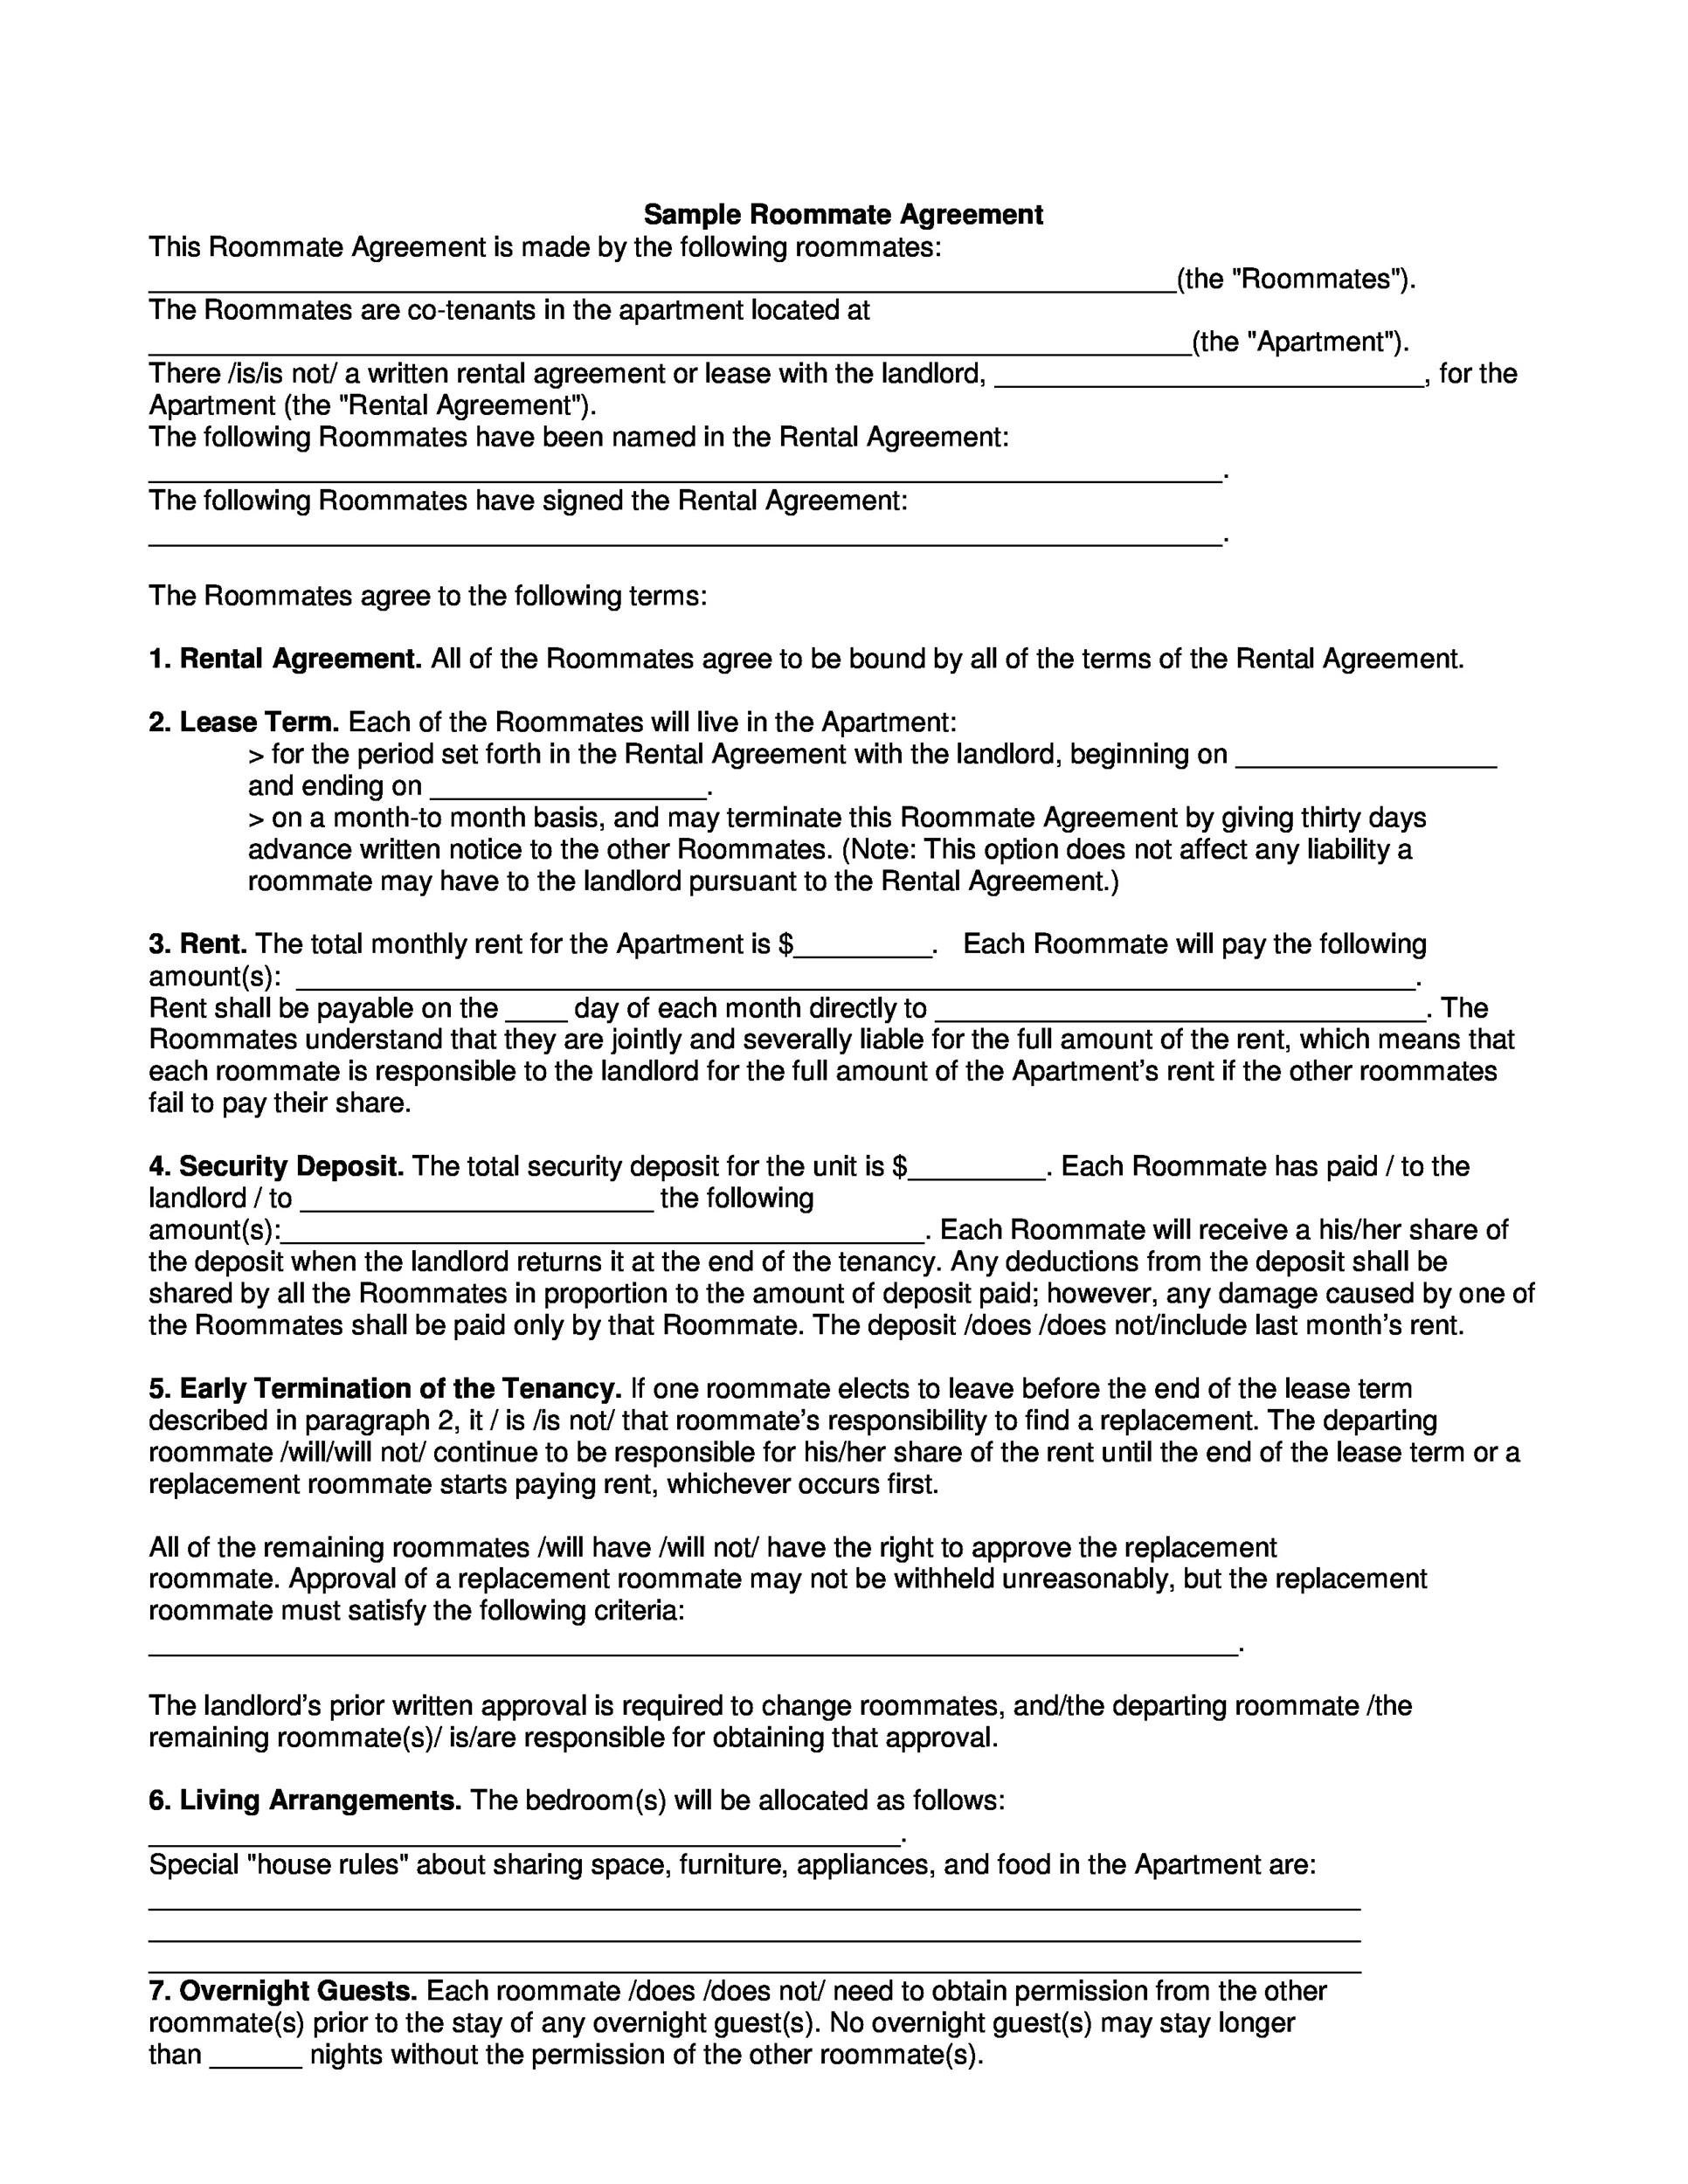 Free roommate agreement template 27